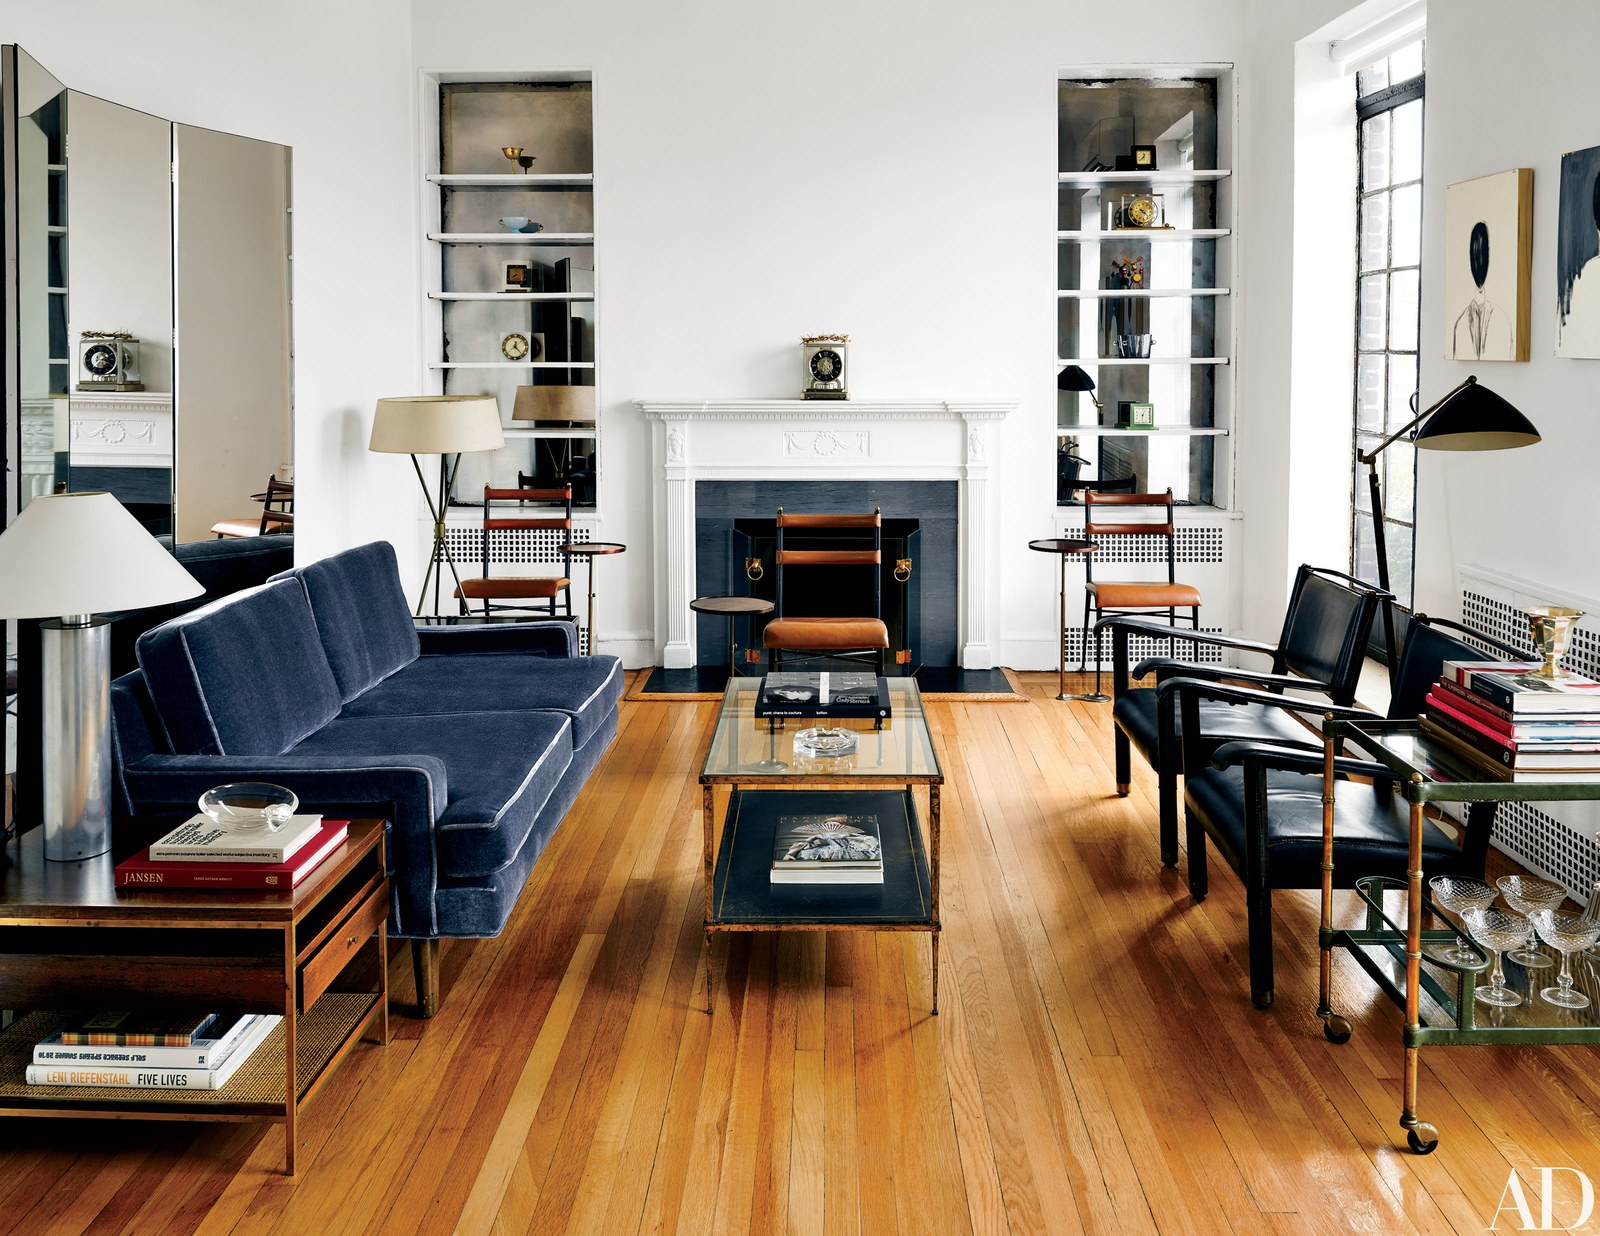 12.small living room ideas that will maximize your space with 15 some of the coolest ideas how to upgrade living room set ups for small rooms via Simphome.com